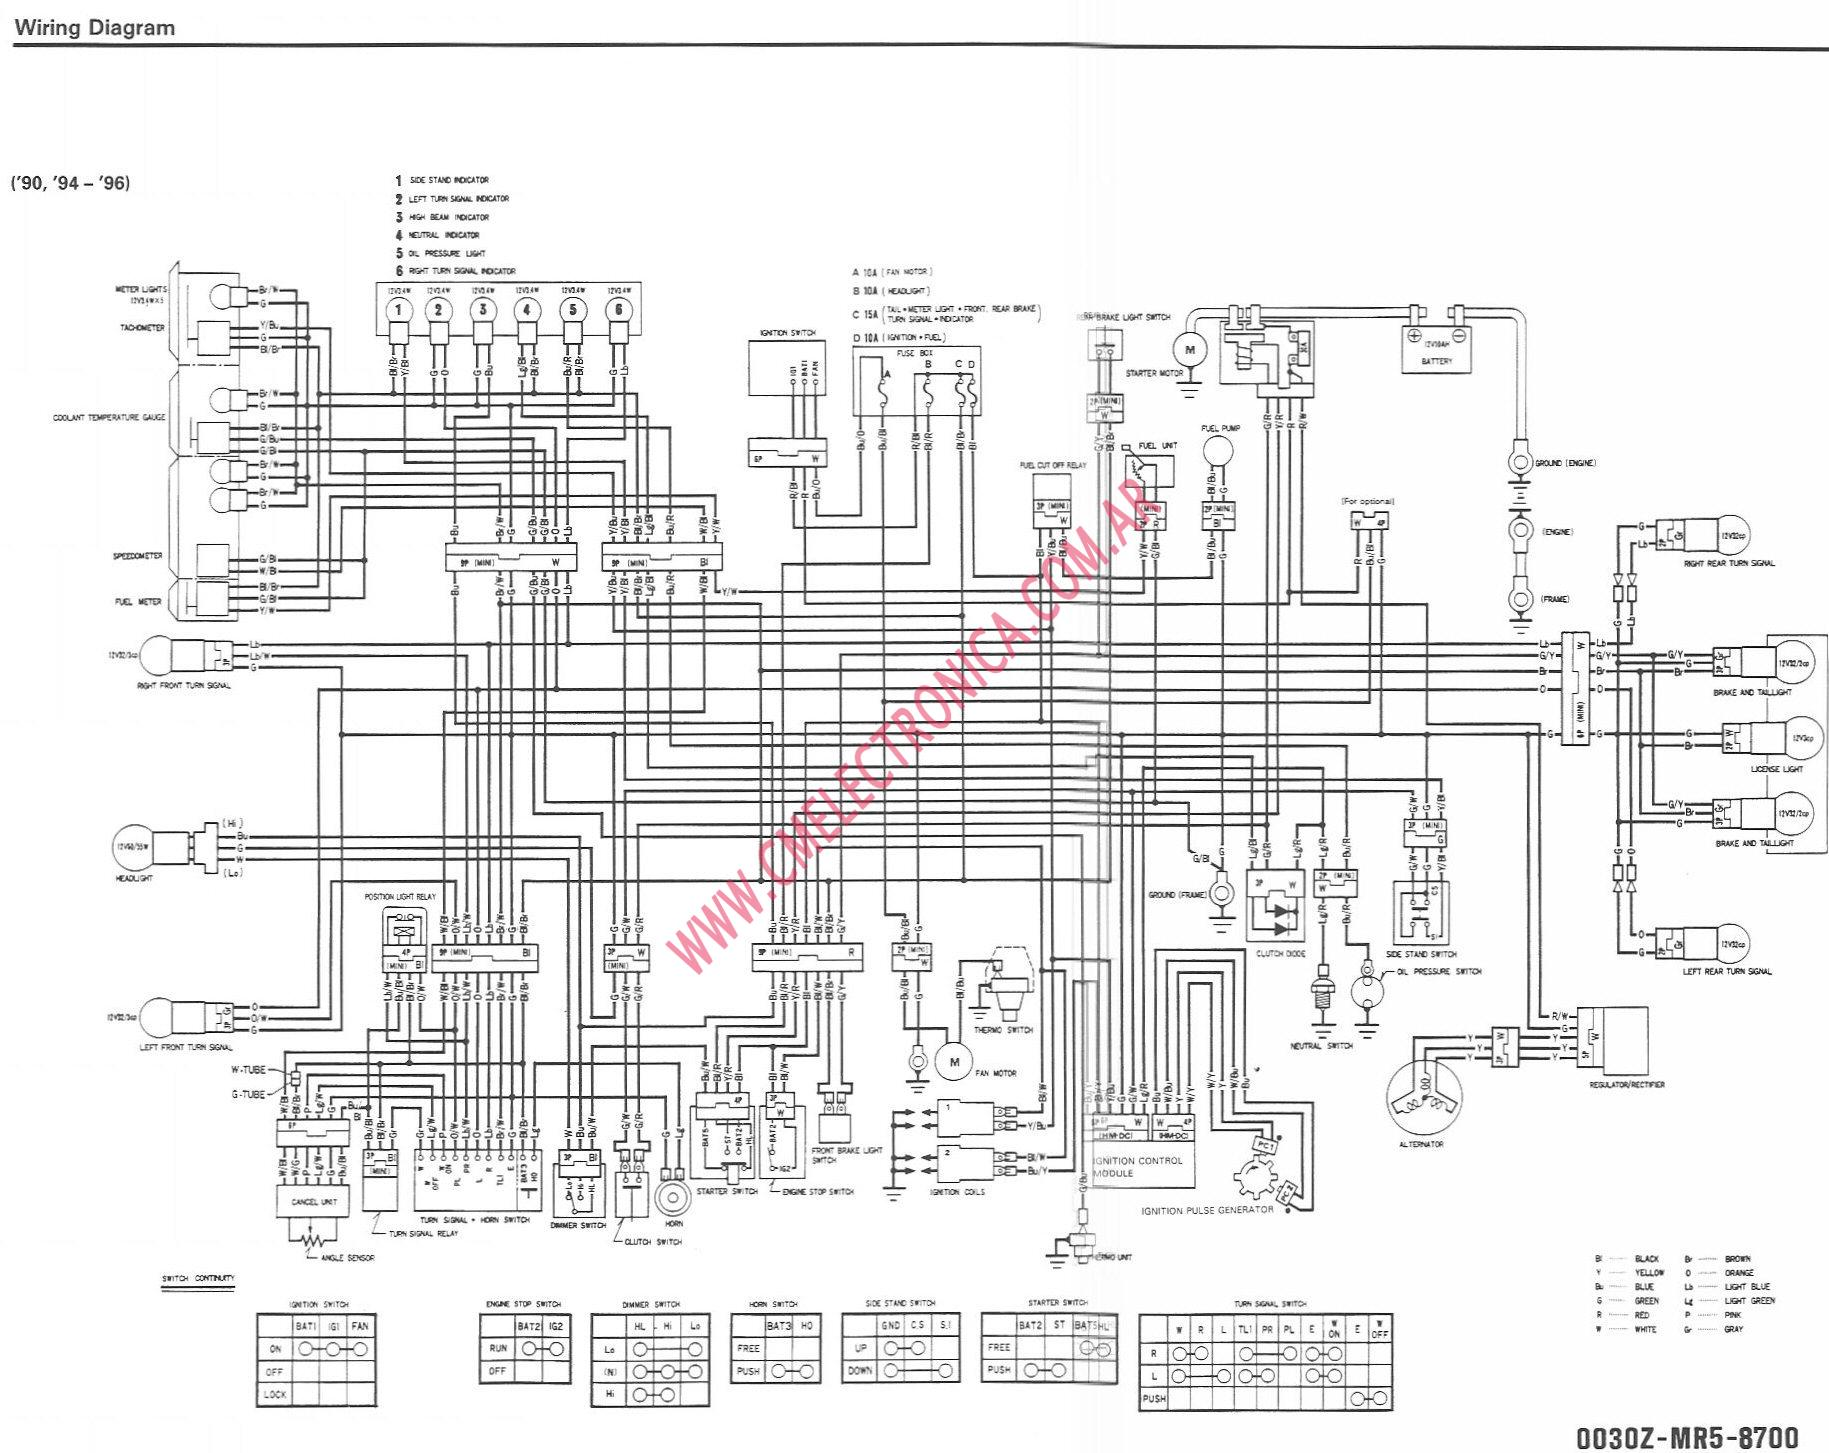 Honda Pc800 Wiring Diagram - Wiring Diagram on switch diagrams, internet of things diagrams, transformer diagrams, honda motorcycle repair diagrams, motor diagrams, smart car diagrams, battery diagrams, friendship bracelet diagrams, gmc fuse box diagrams, lighting diagrams, engine diagrams, electrical diagrams, troubleshooting diagrams, electronic circuit diagrams, pinout diagrams, led circuit diagrams, hvac diagrams, series and parallel circuits diagrams, sincgars radio configurations diagrams,